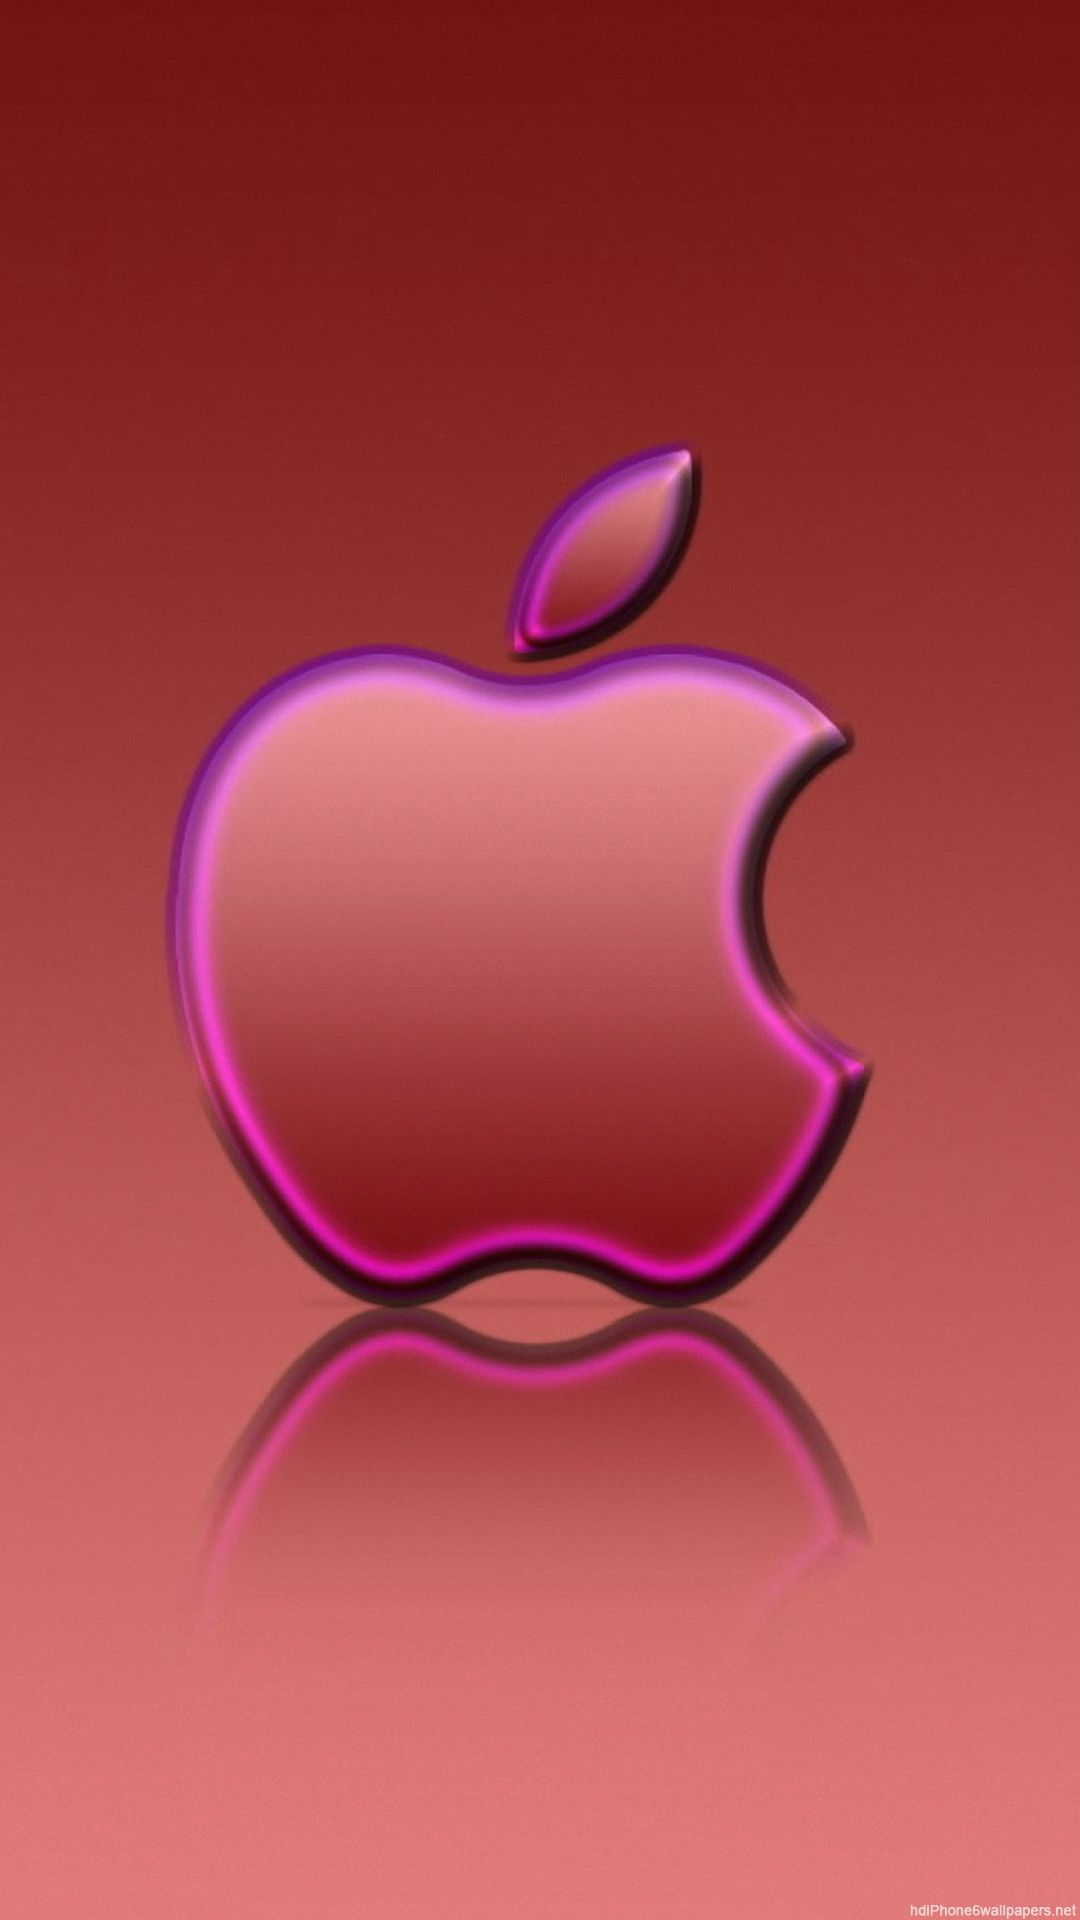 3d Apple Wallpaper Hd 1080p Download The Galleries Of Hd Wallpaper